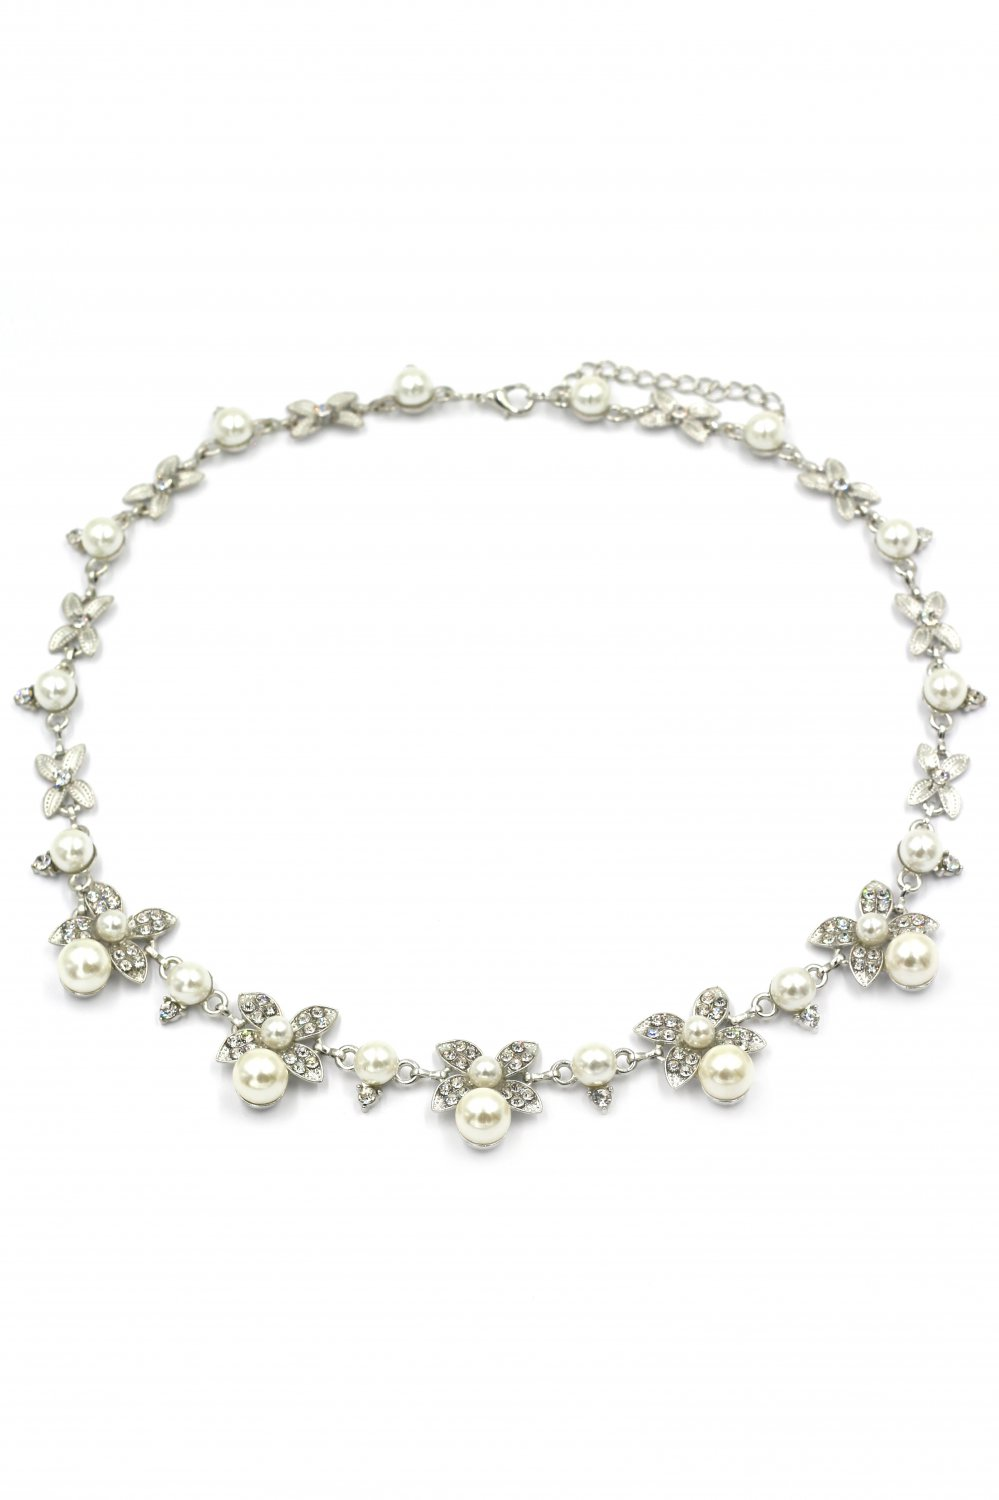 Elegant flower crystal and pearl silver necklace